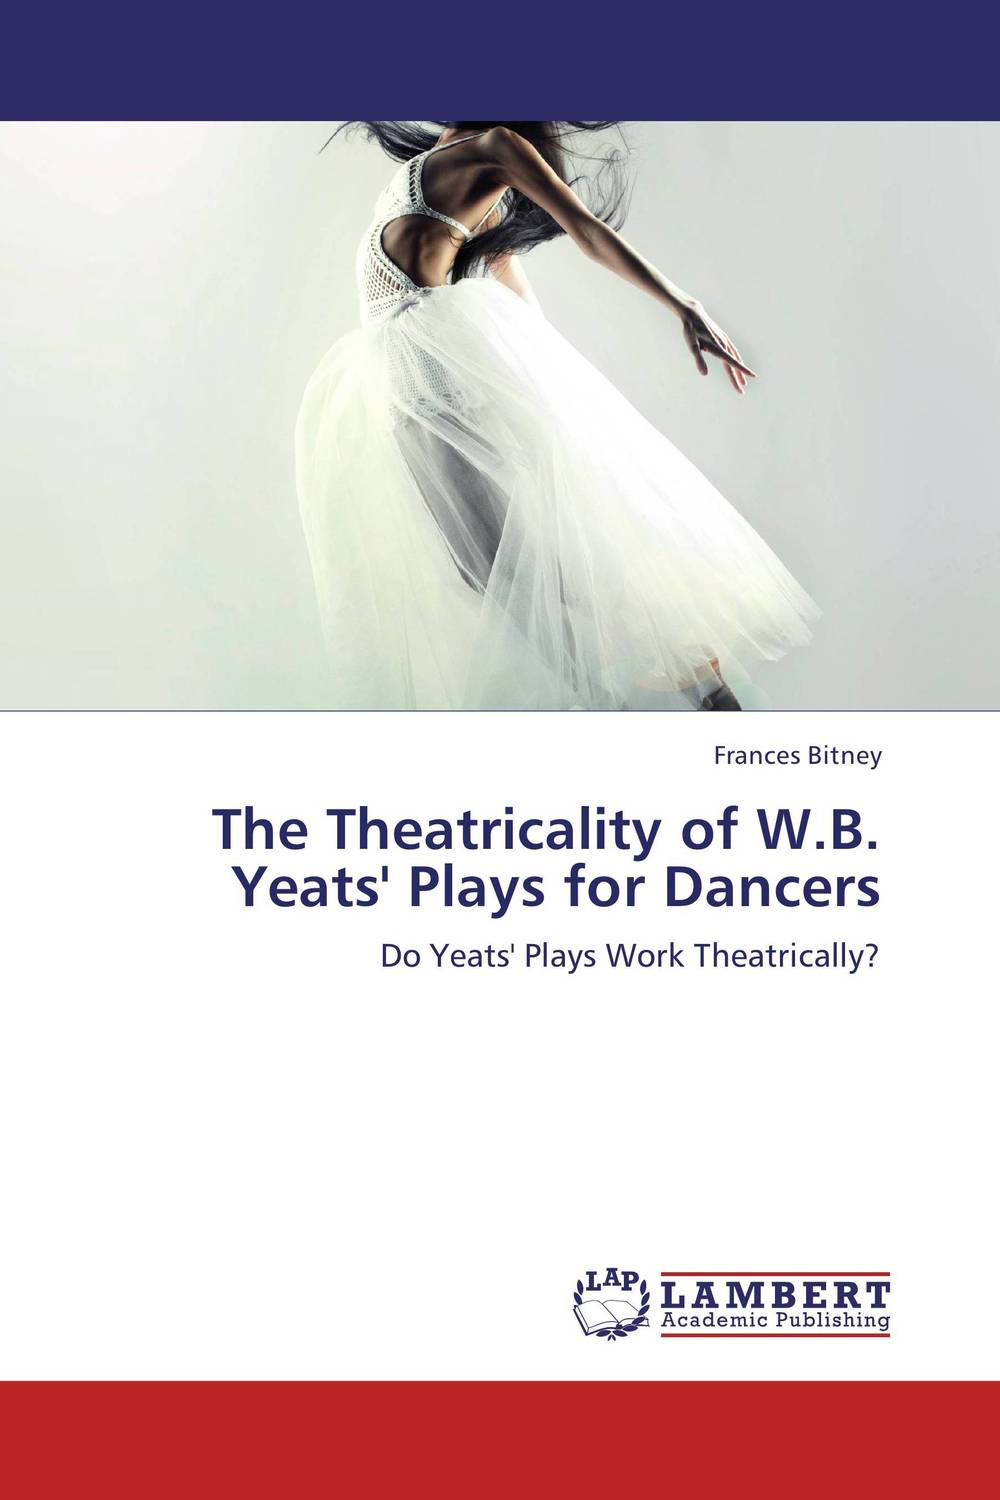 The Theatricality of W.B. Yeats' Plays for Dancers william butler yeats the collected works in verse and prose of william butler yeats volume 6 of 8 ideas of good and evil